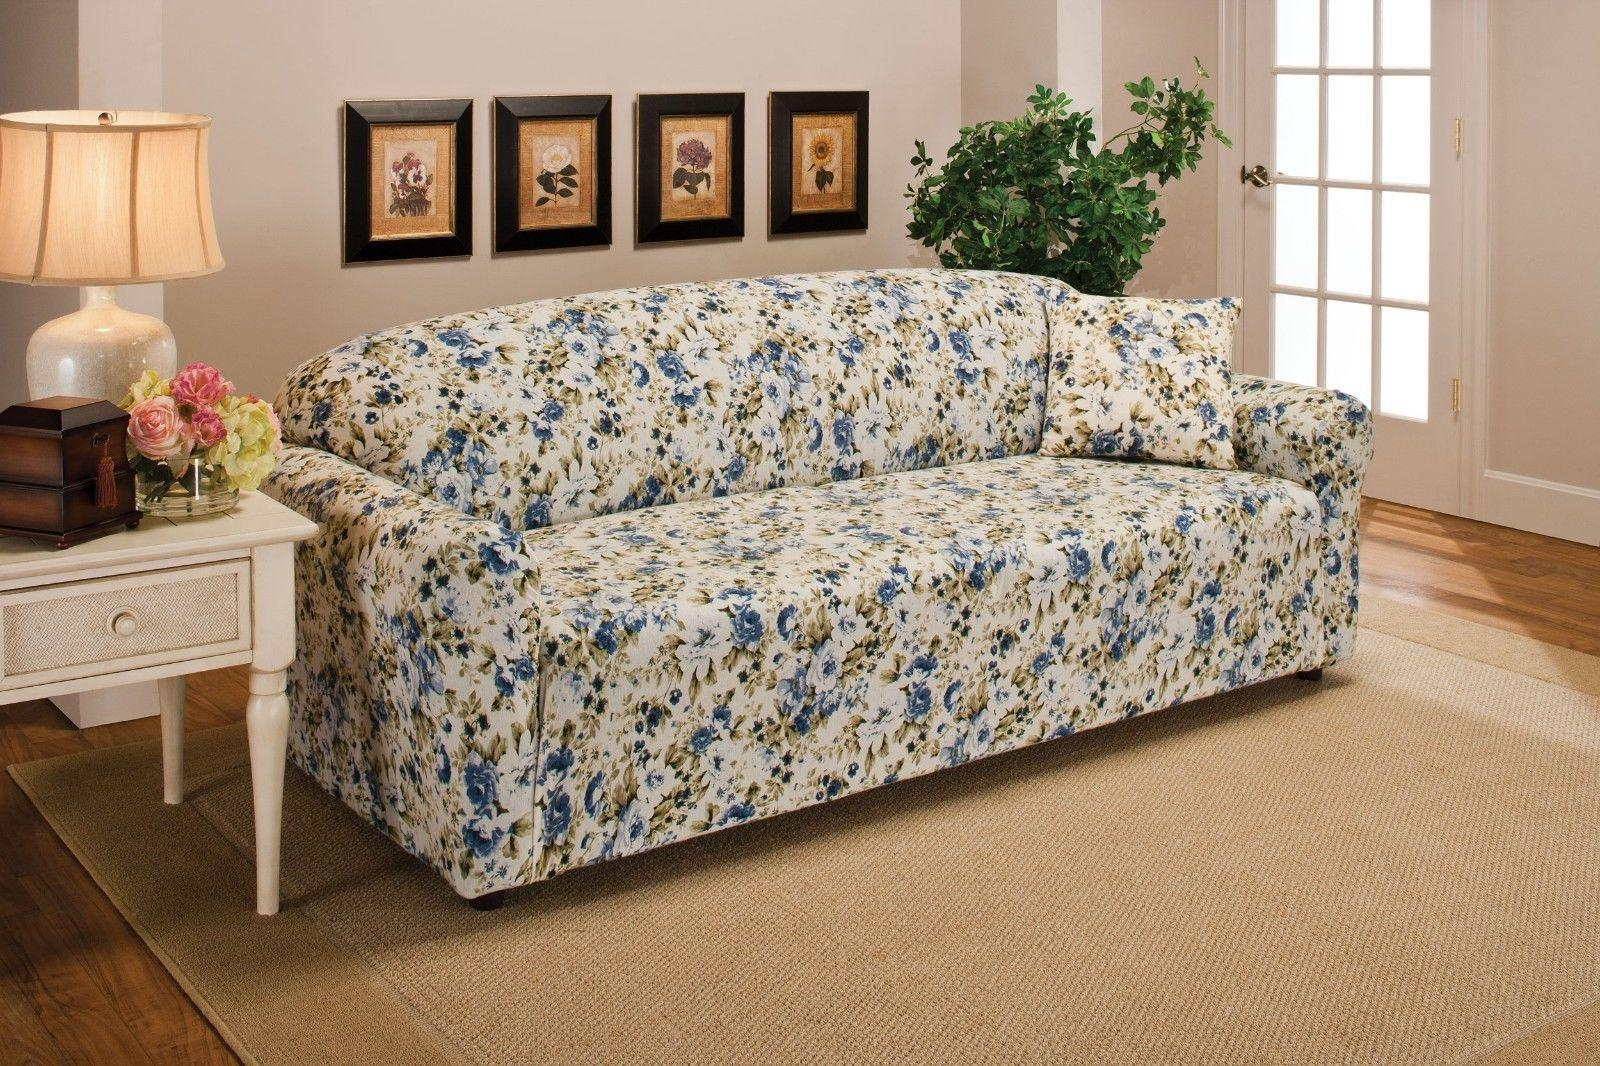 Blue Floral Flower Jersey Sofa Stretch Slipcover Couch Cover Chair Pertaining To Blue Plaid Sofas (Image 3 of 20)